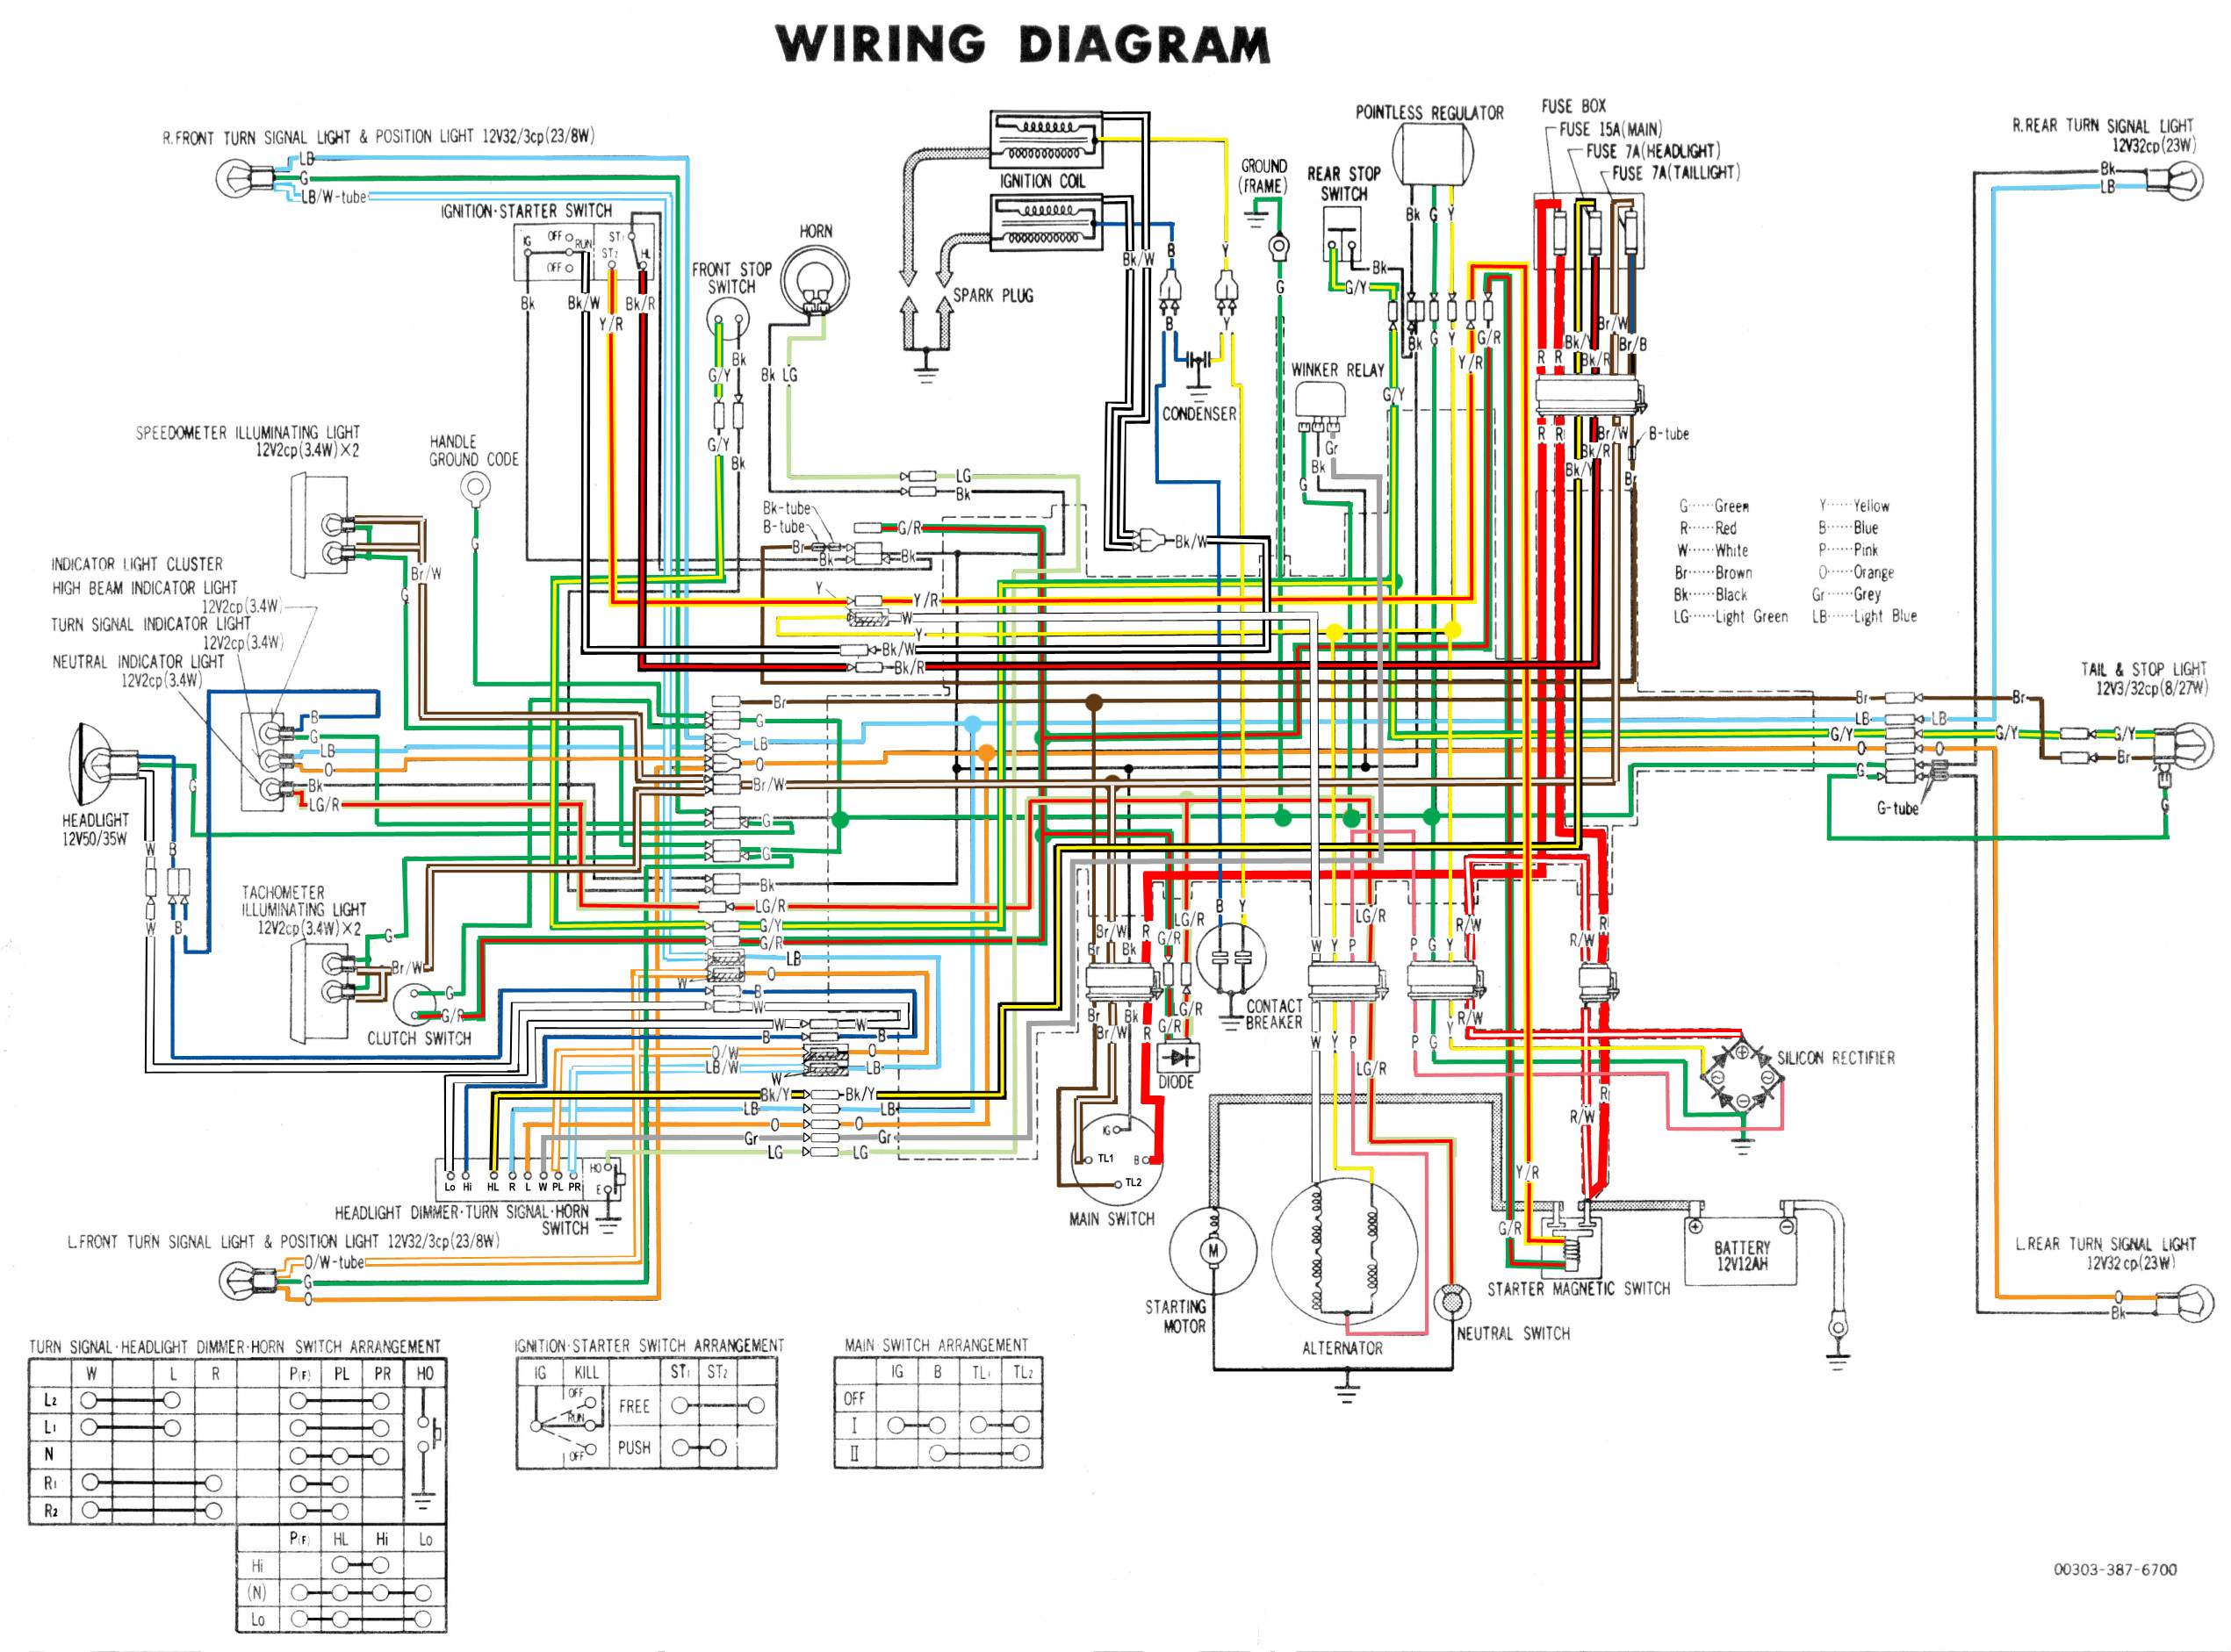 Honda 360 Wiring Diagram Diagrams Scooter Turn Signal Cheap Regulator Rectifier Upgrade Page 43 Parts 50cc